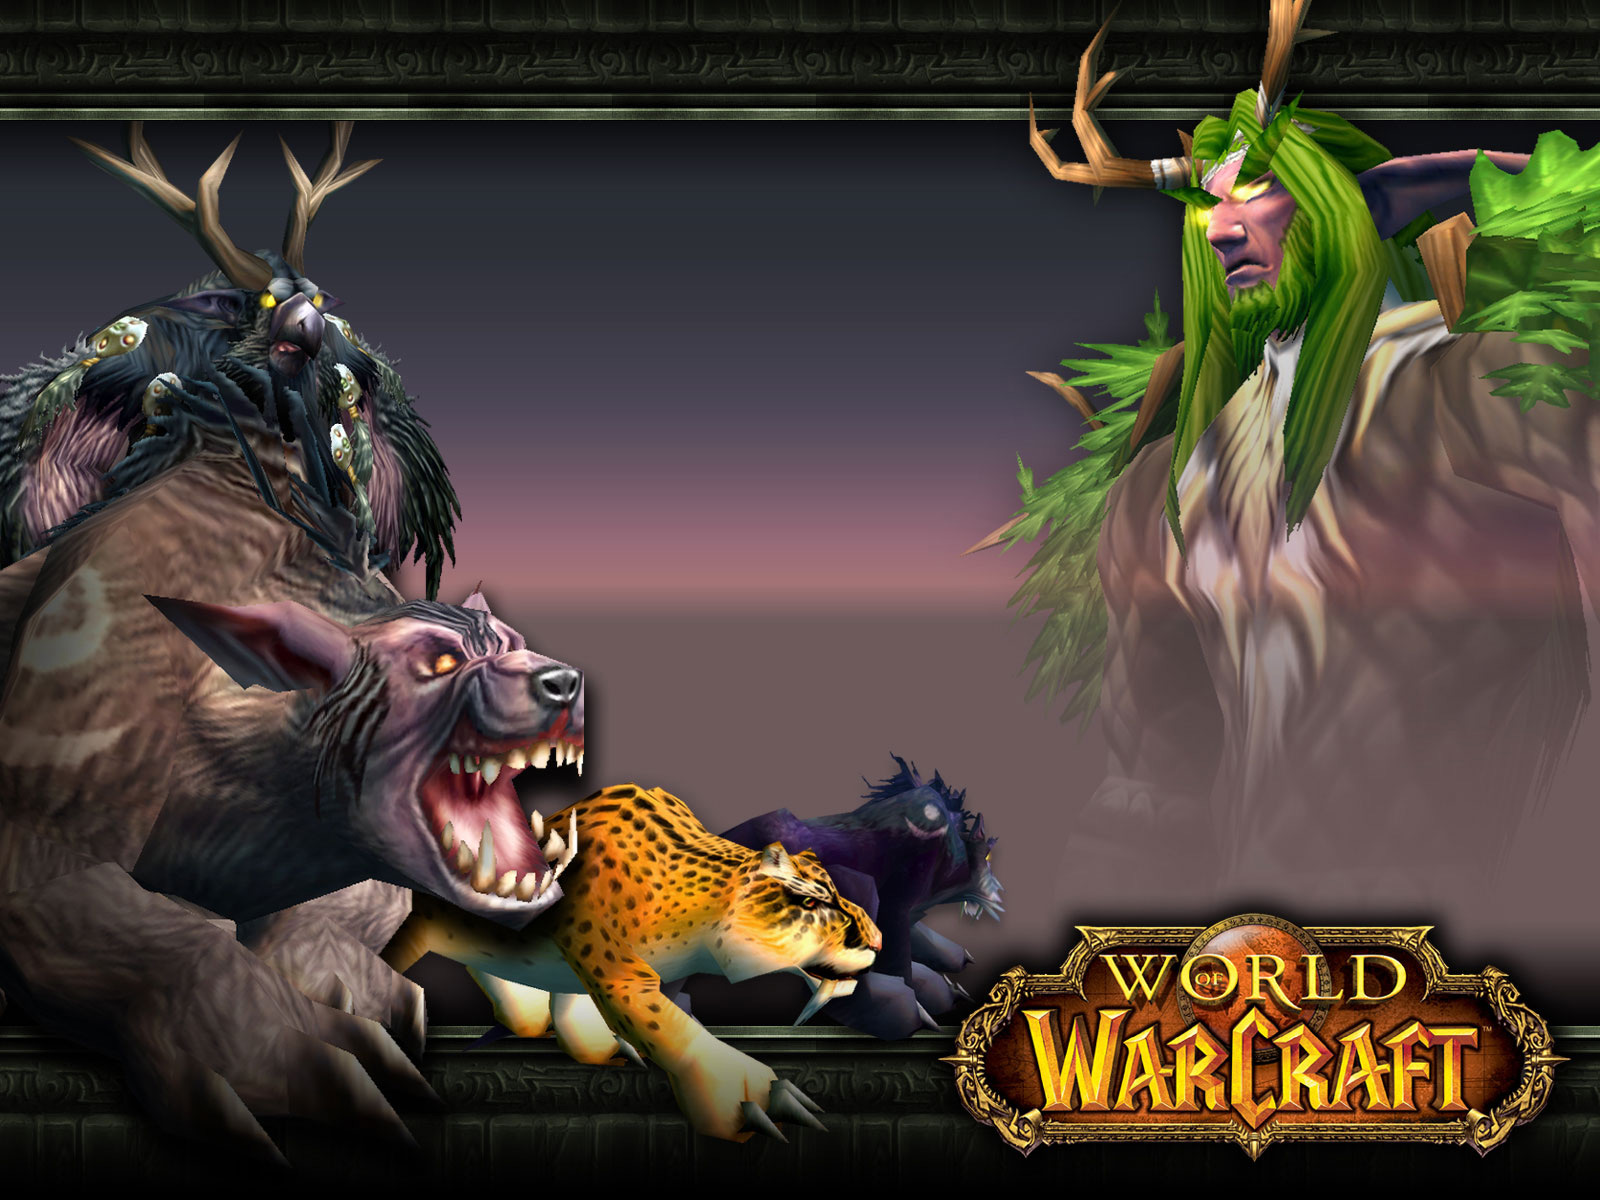 Wallpaper druid forms Word of Warcraft WoW